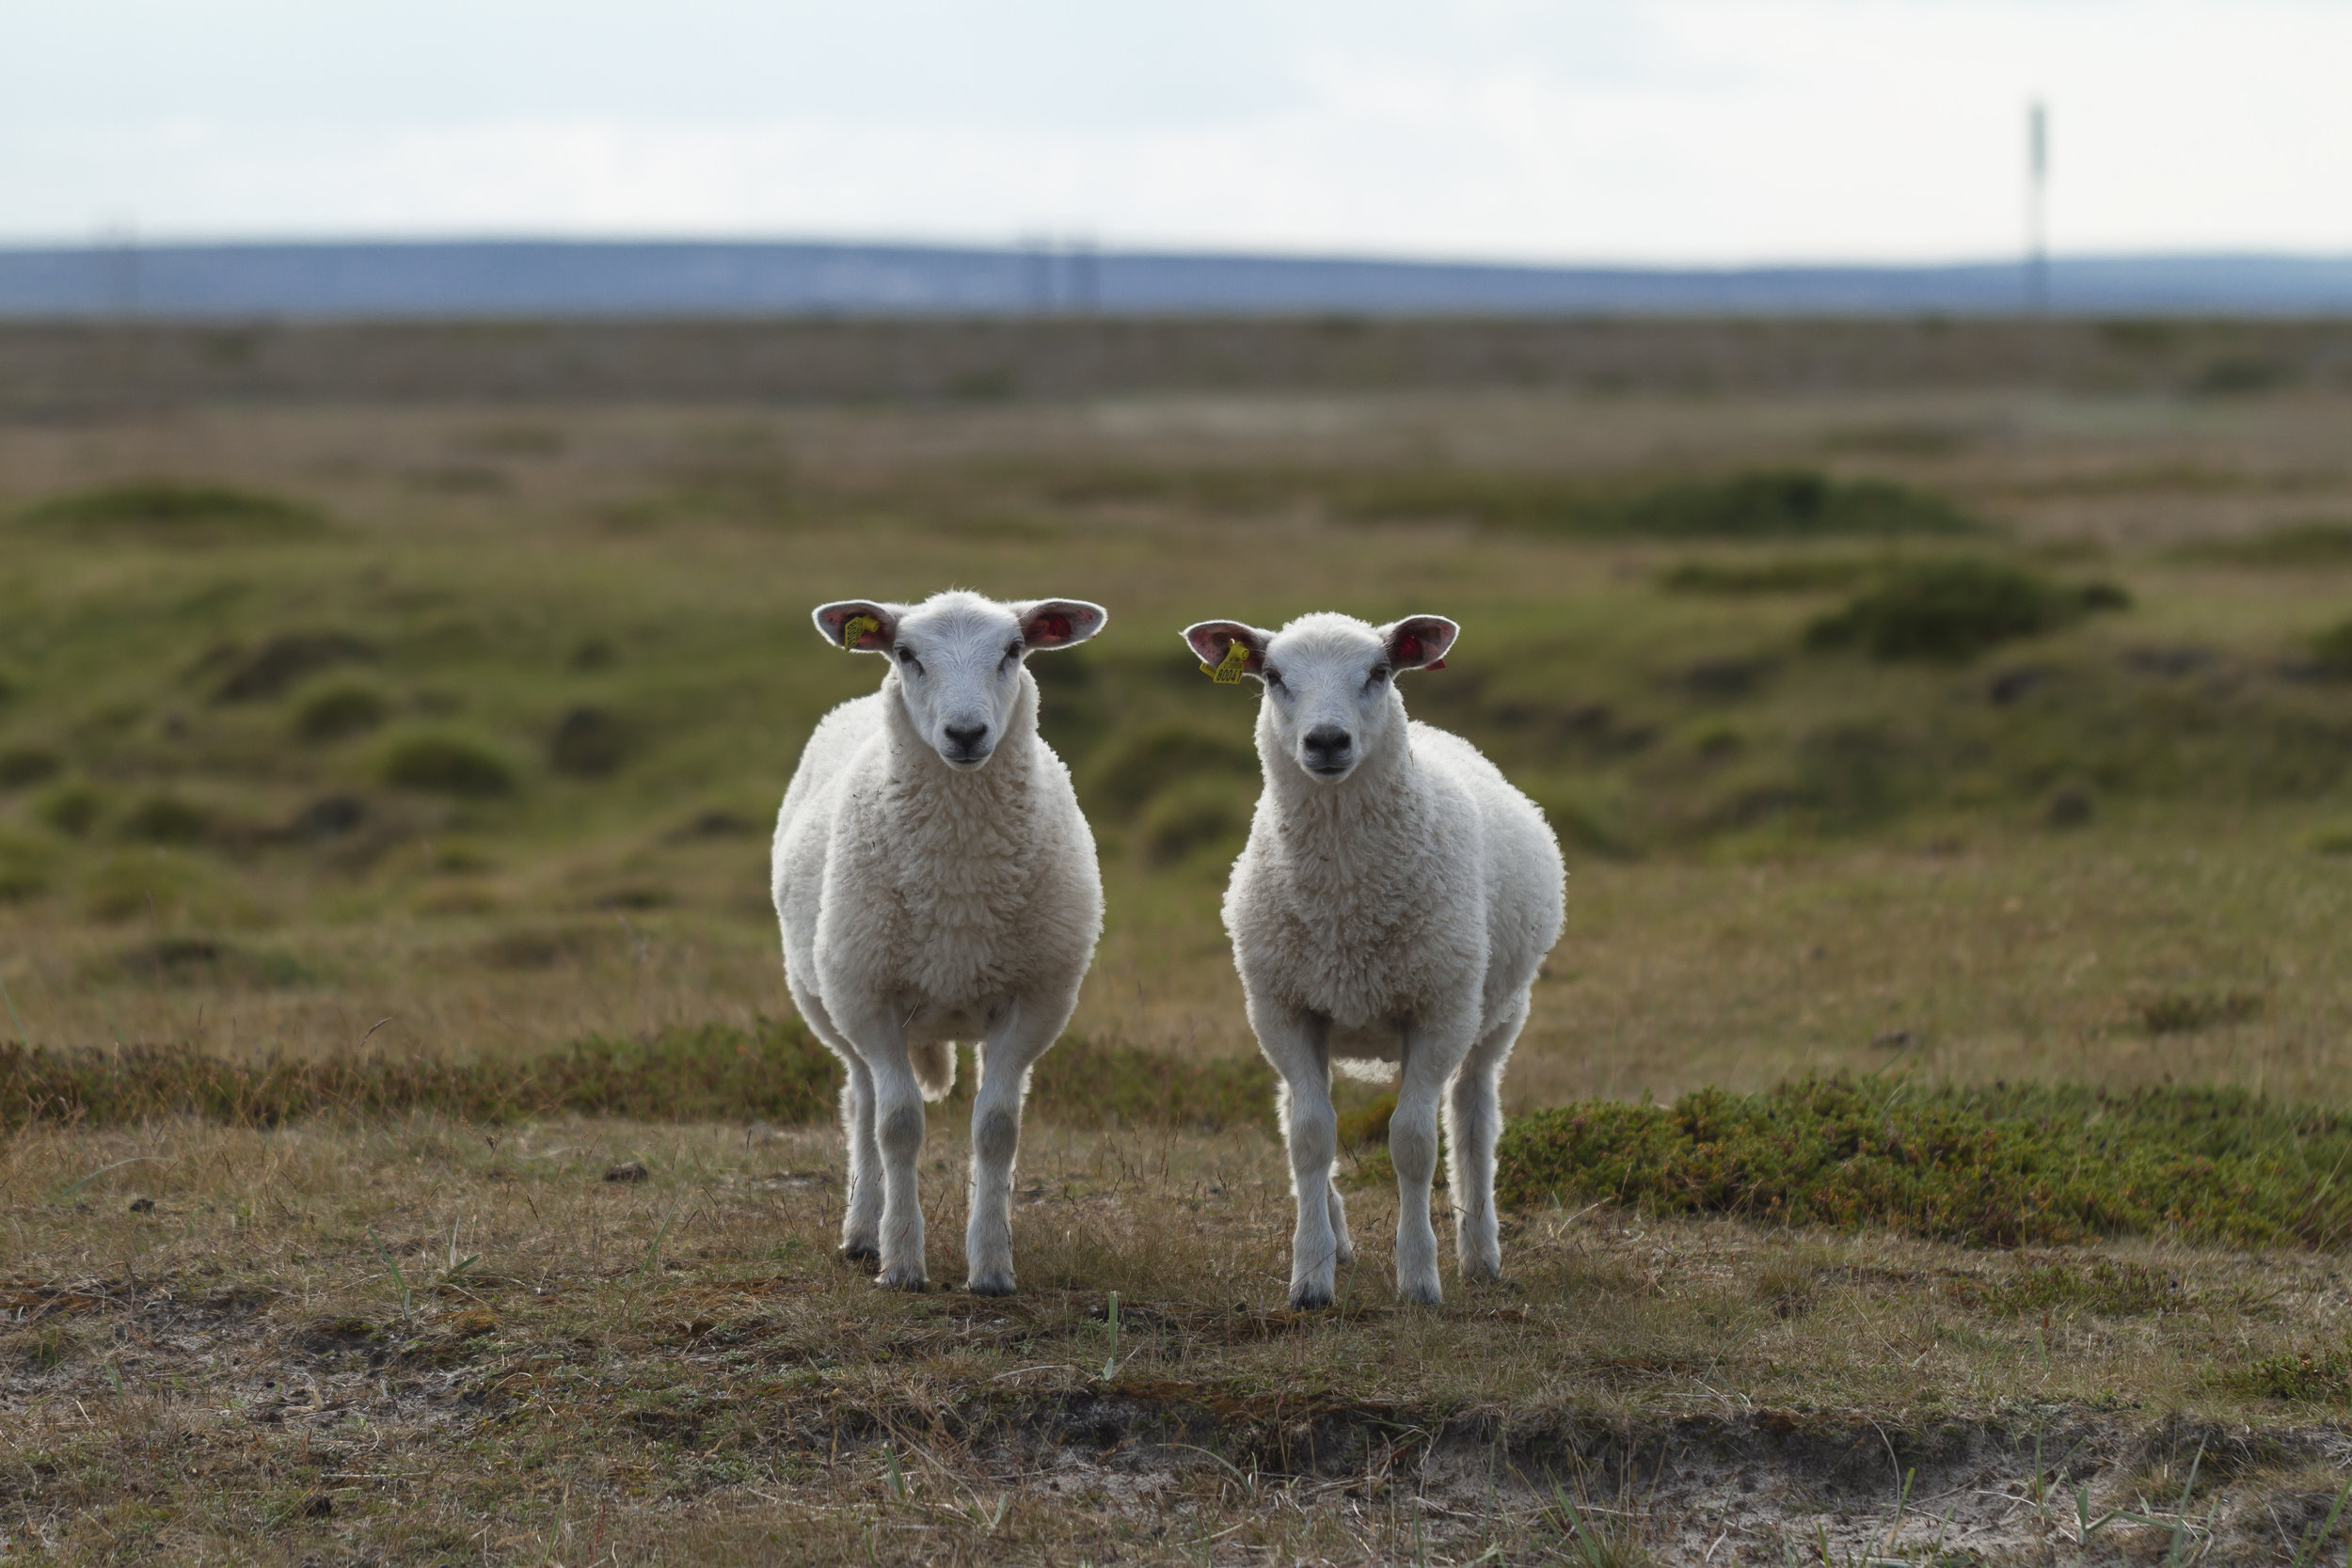 If these guys were separated at birth and one day came back to meet each other without knowing who the other was, would anyone give a good baa damn?